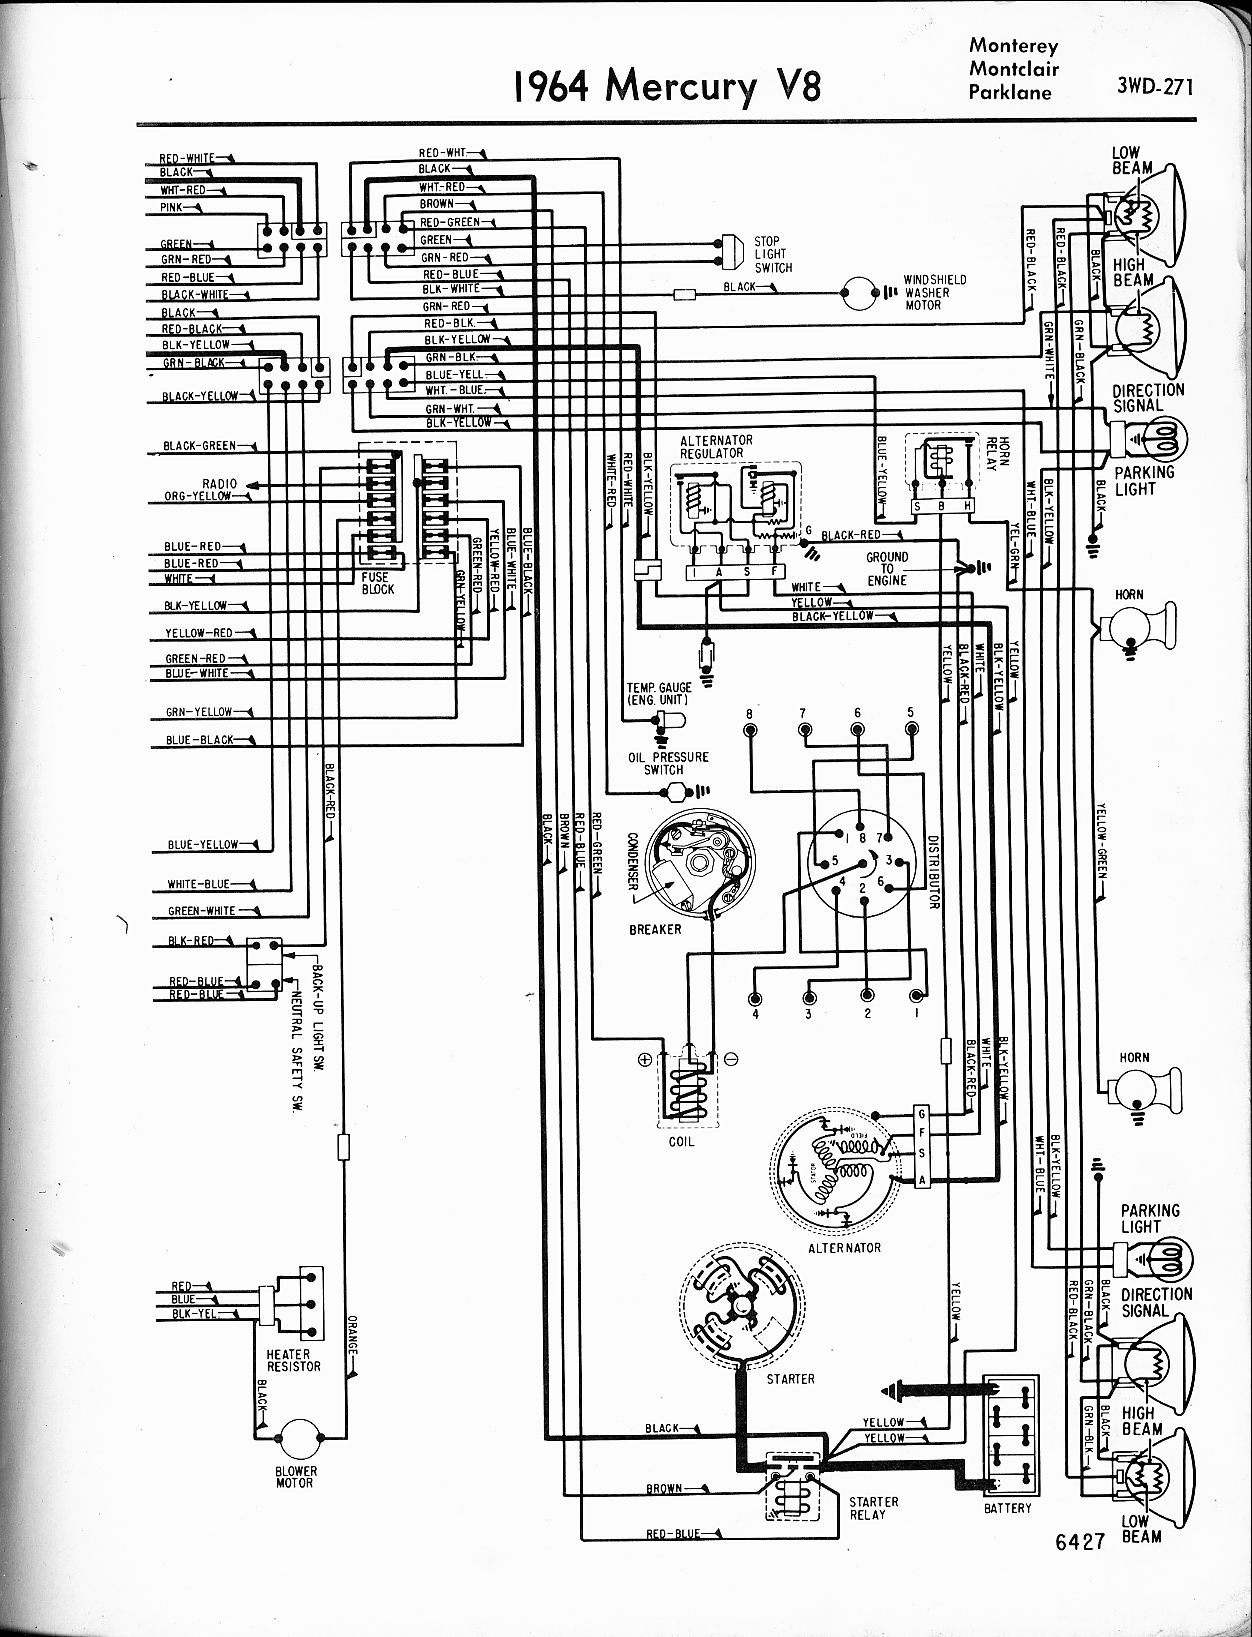 hight resolution of mercury wiring diagrams the old car manual project1964 v8 monterey montclair parklane right